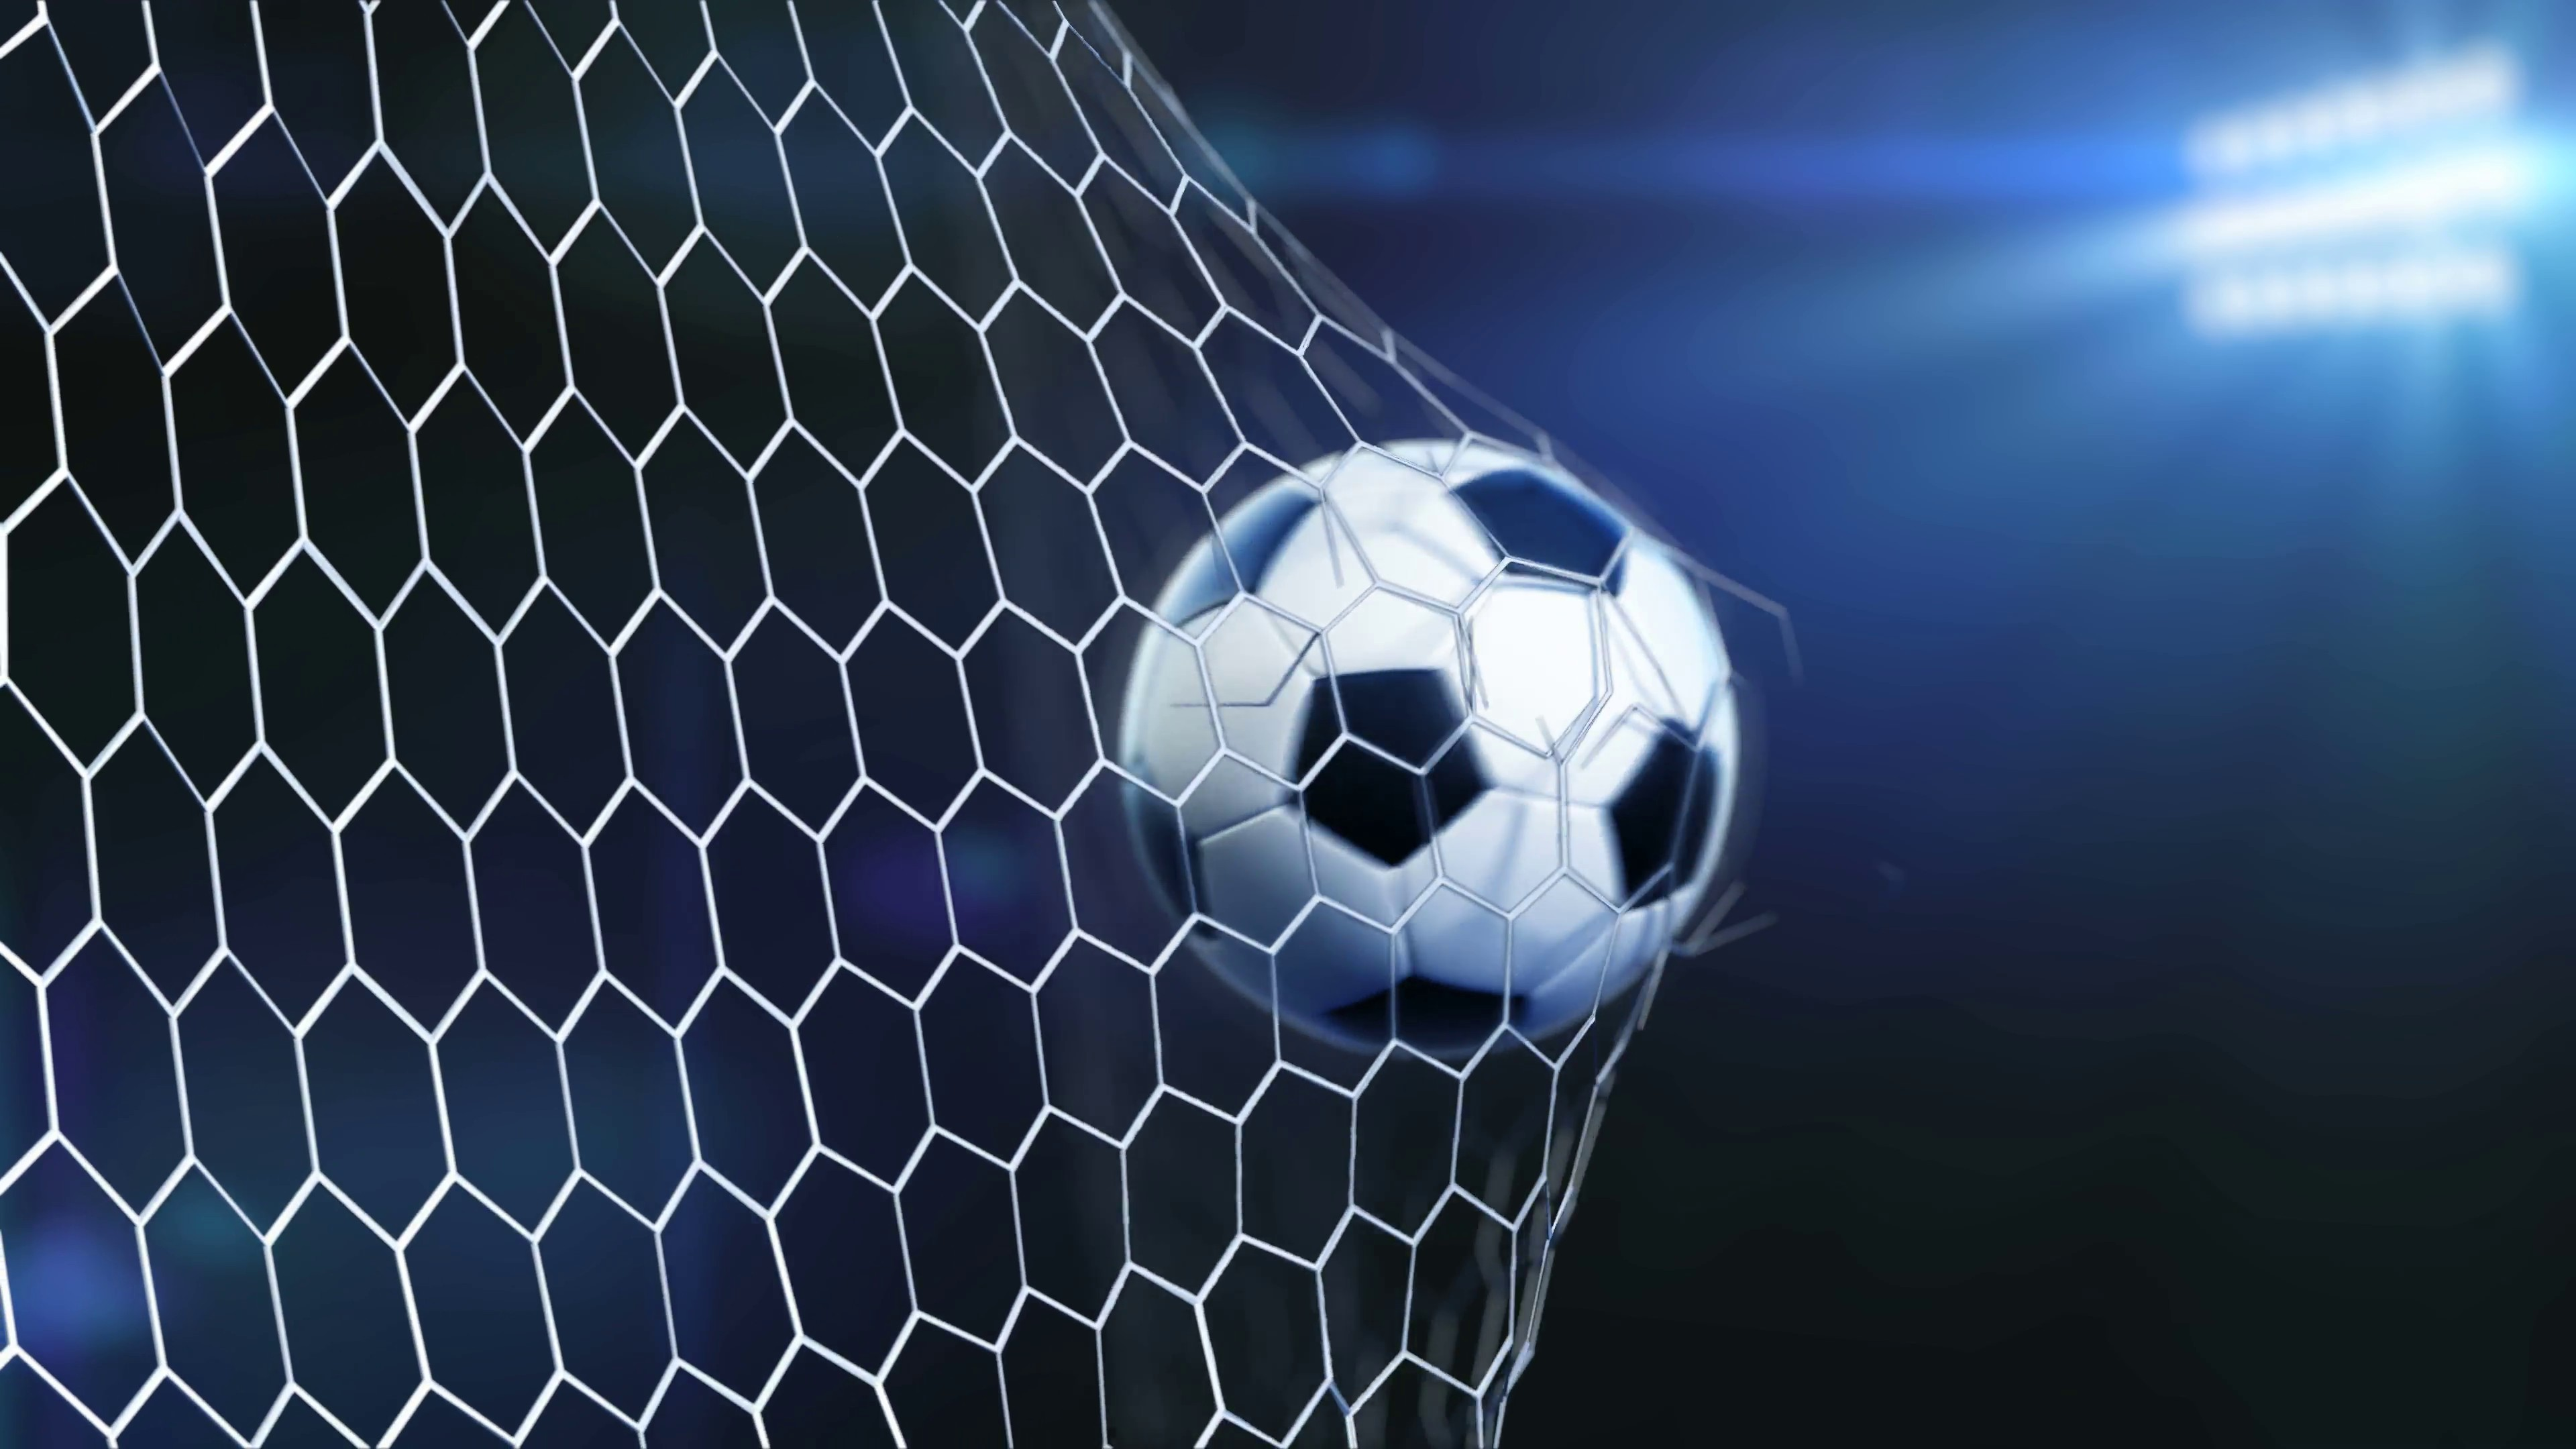 200743-soccer-background-3840x2160-for-ipad-2.jpg